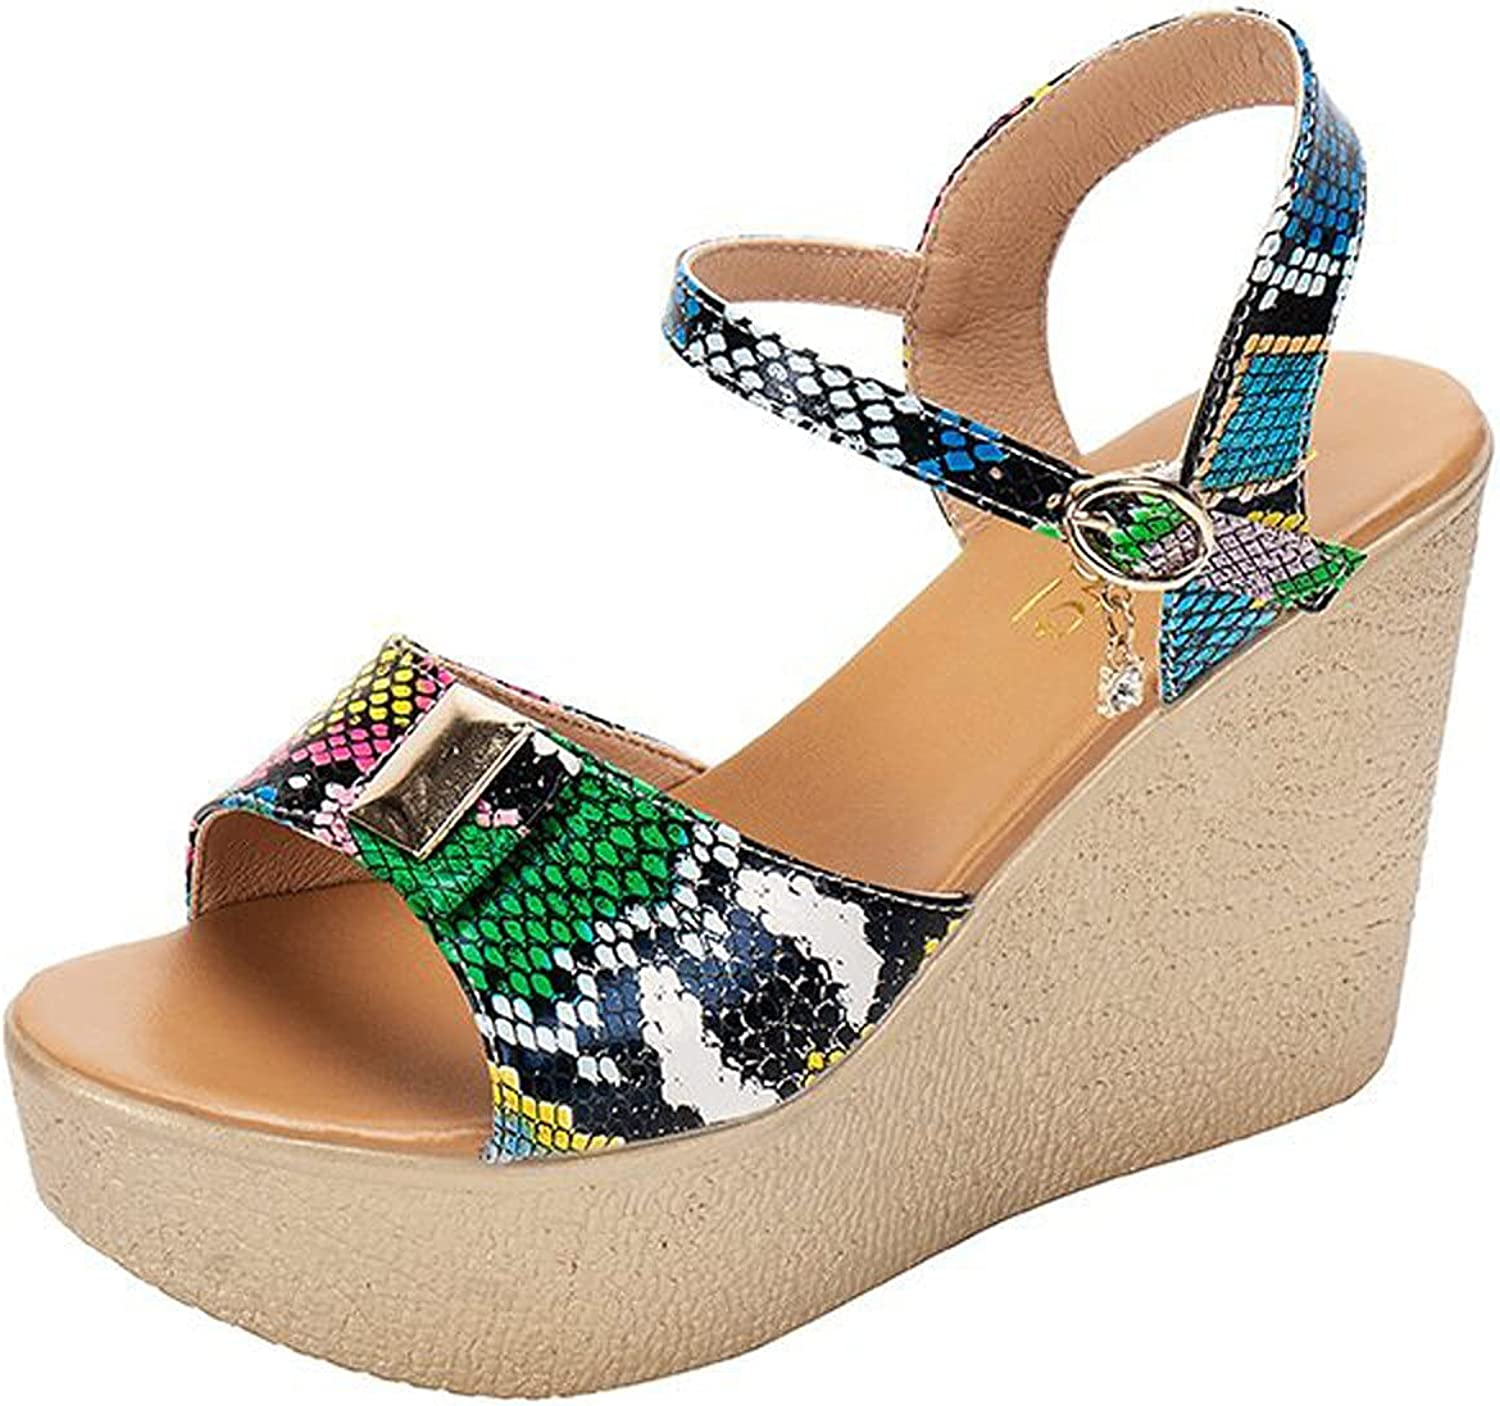 Wedge Sandals for Women Snake Print Colorblock Cutout Peep Toe Mid Heel Fashion Breathable Beach Sandals